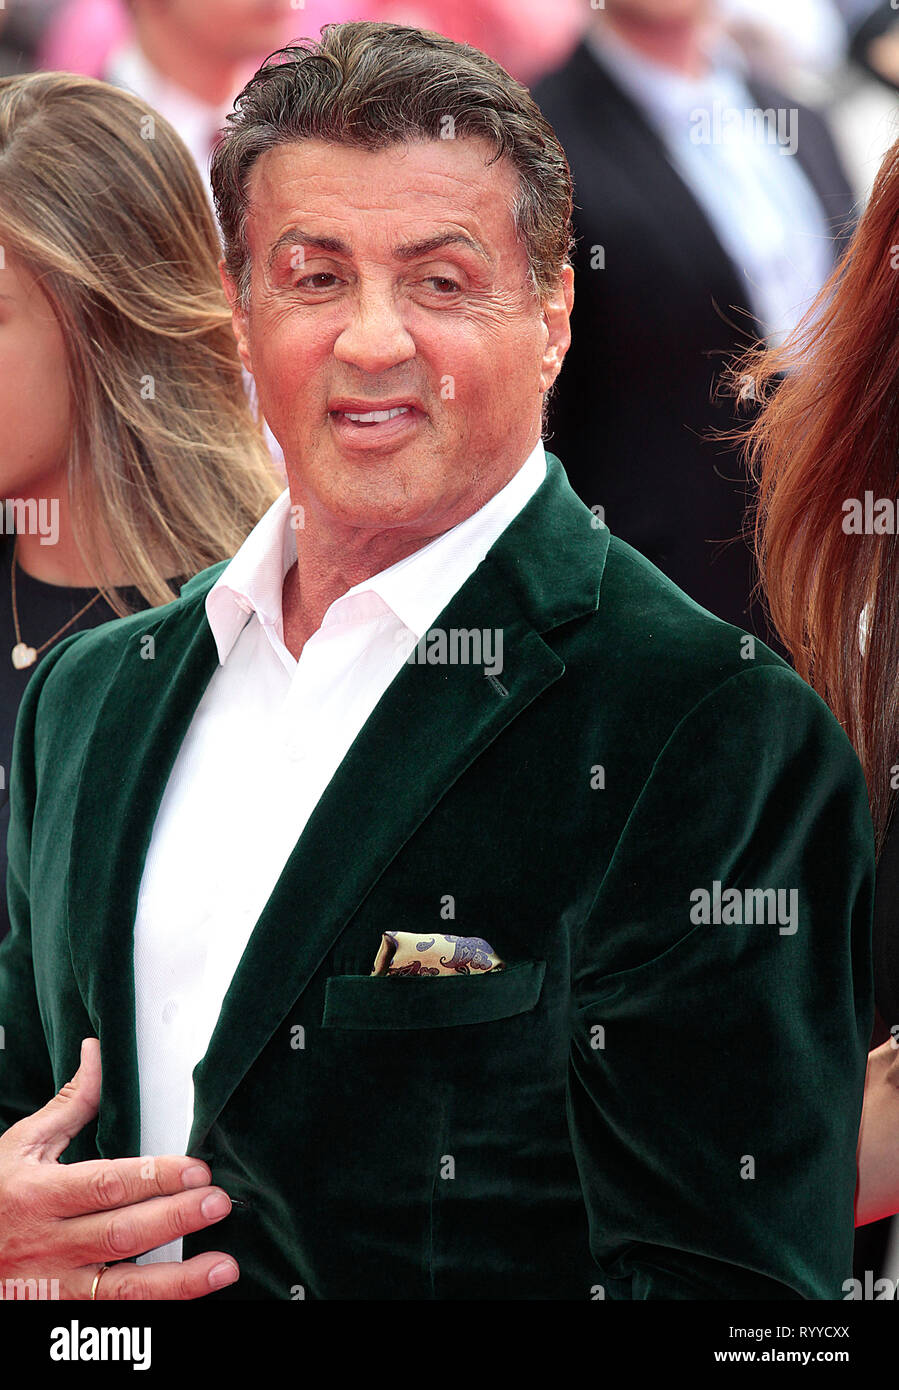 Aug 04, 2014 - London, England, UK - The Expendables 3 World Premiere, Odeon, Leicester Square Photo Shows: Sylvester Stallone - Stock Image